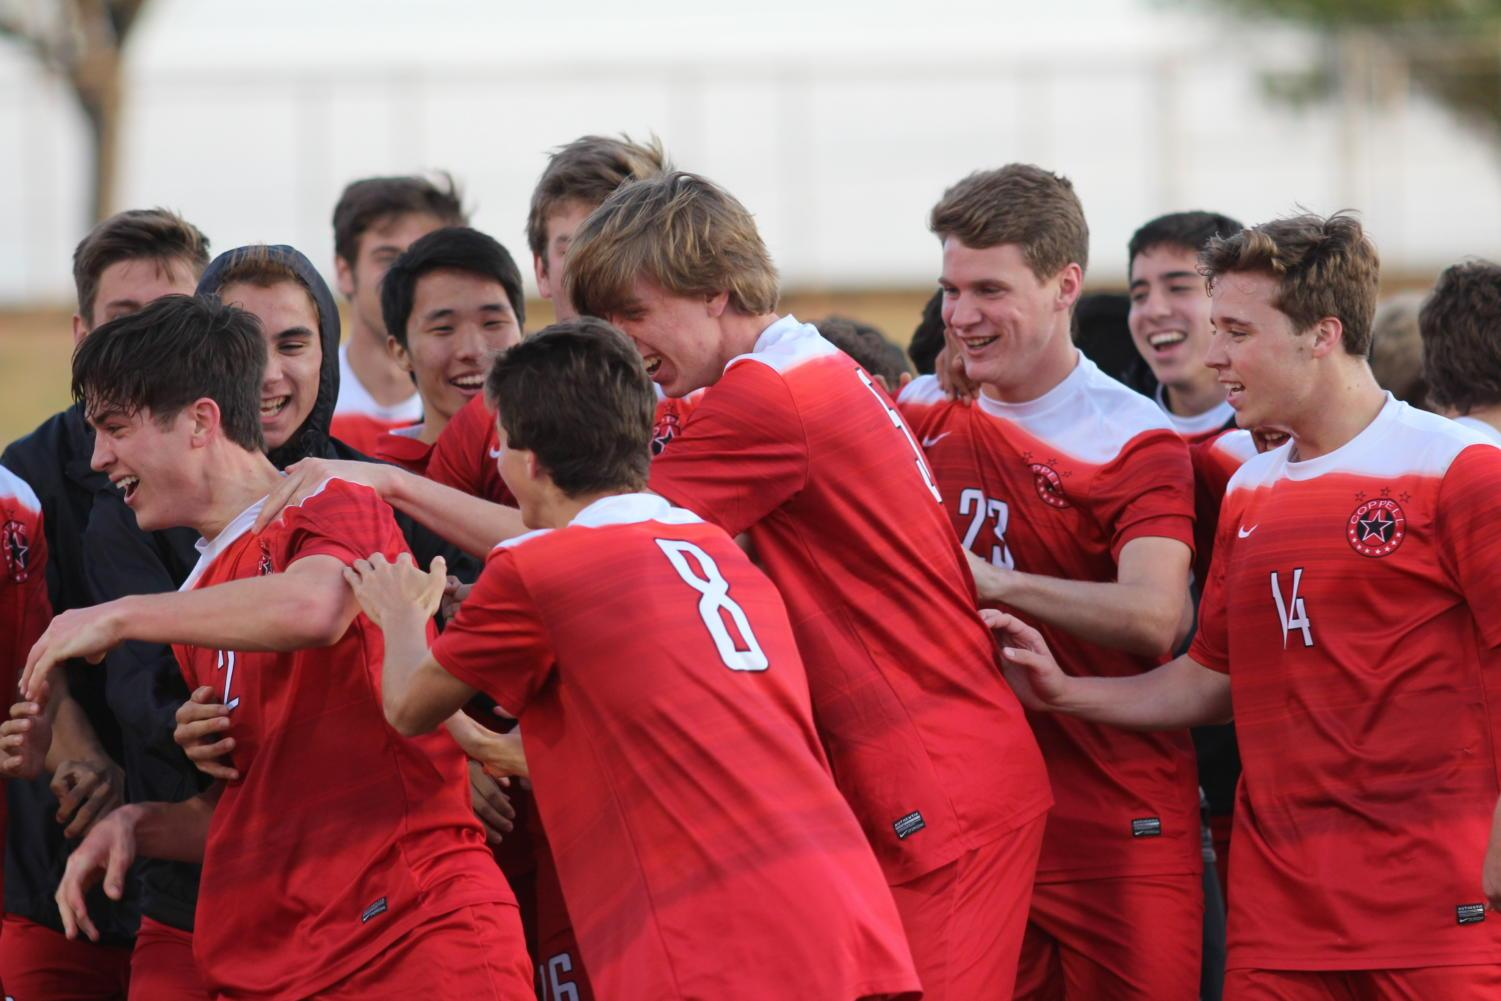 The Coppell Cowboys celebrate after senior fullback defender Marshall Board made a goal during the second half of the game on March 30 at John Clark Stadium in Plano. The Coppell Cowboys defeated the Garland Owls, 4-0, in the bi-district round of the Class 6A Region I playoffs.